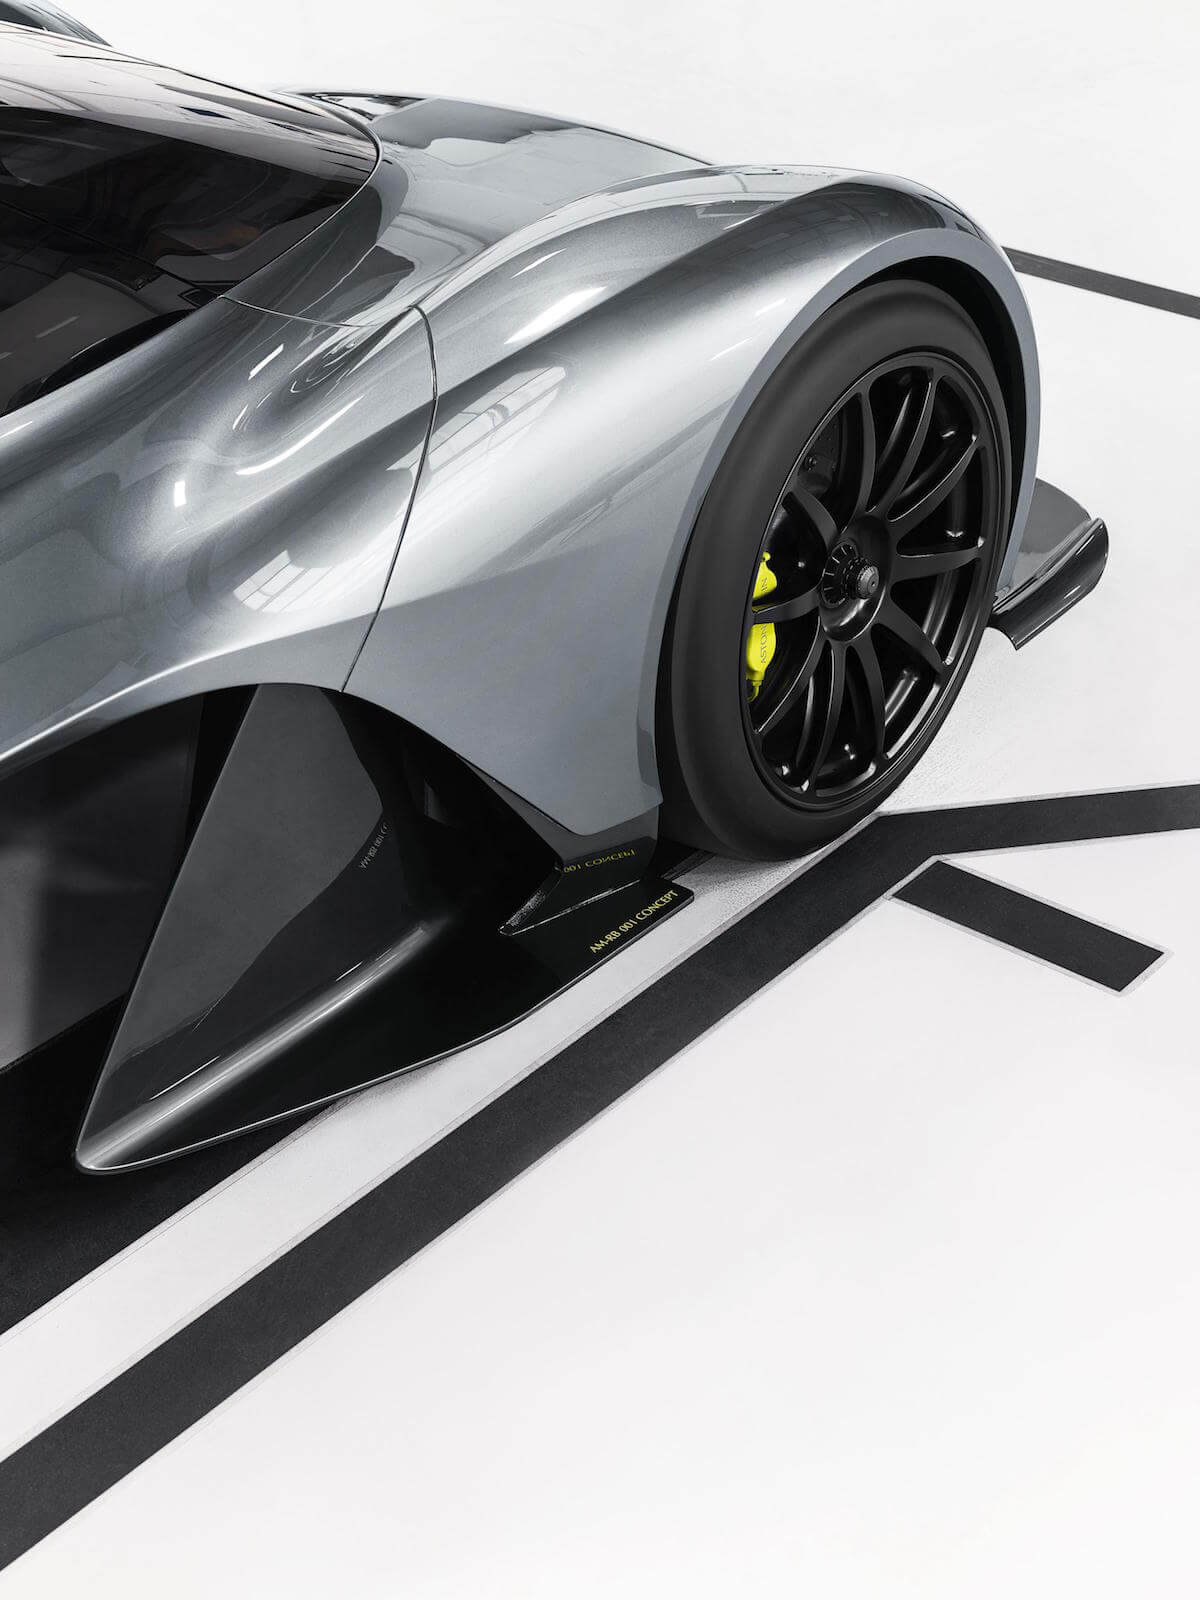 Aston Martin Red Bull AM-RB 001 Hypercar 7